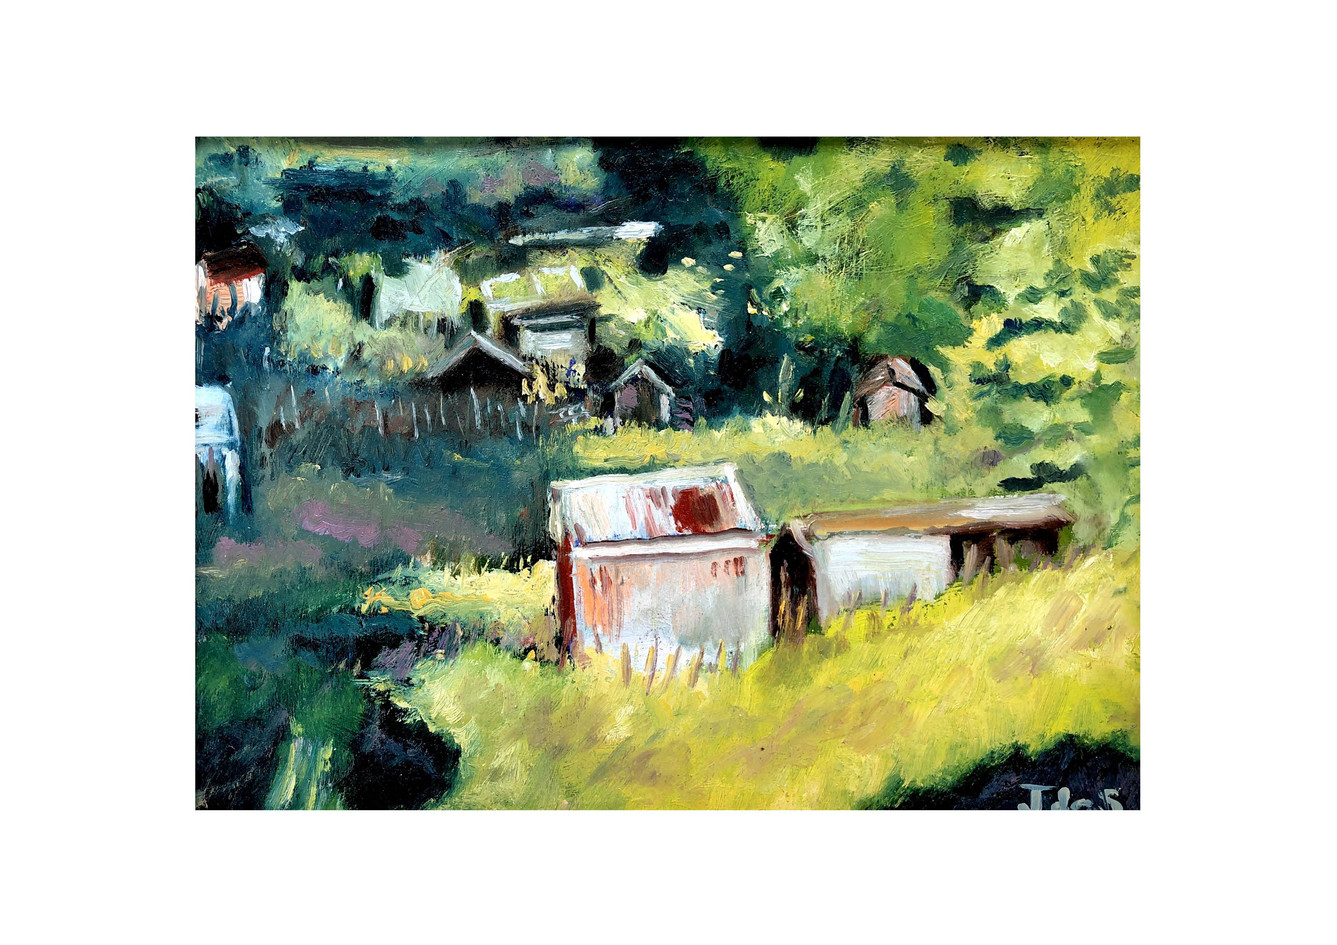 Allotment Sheds 15x12 oil